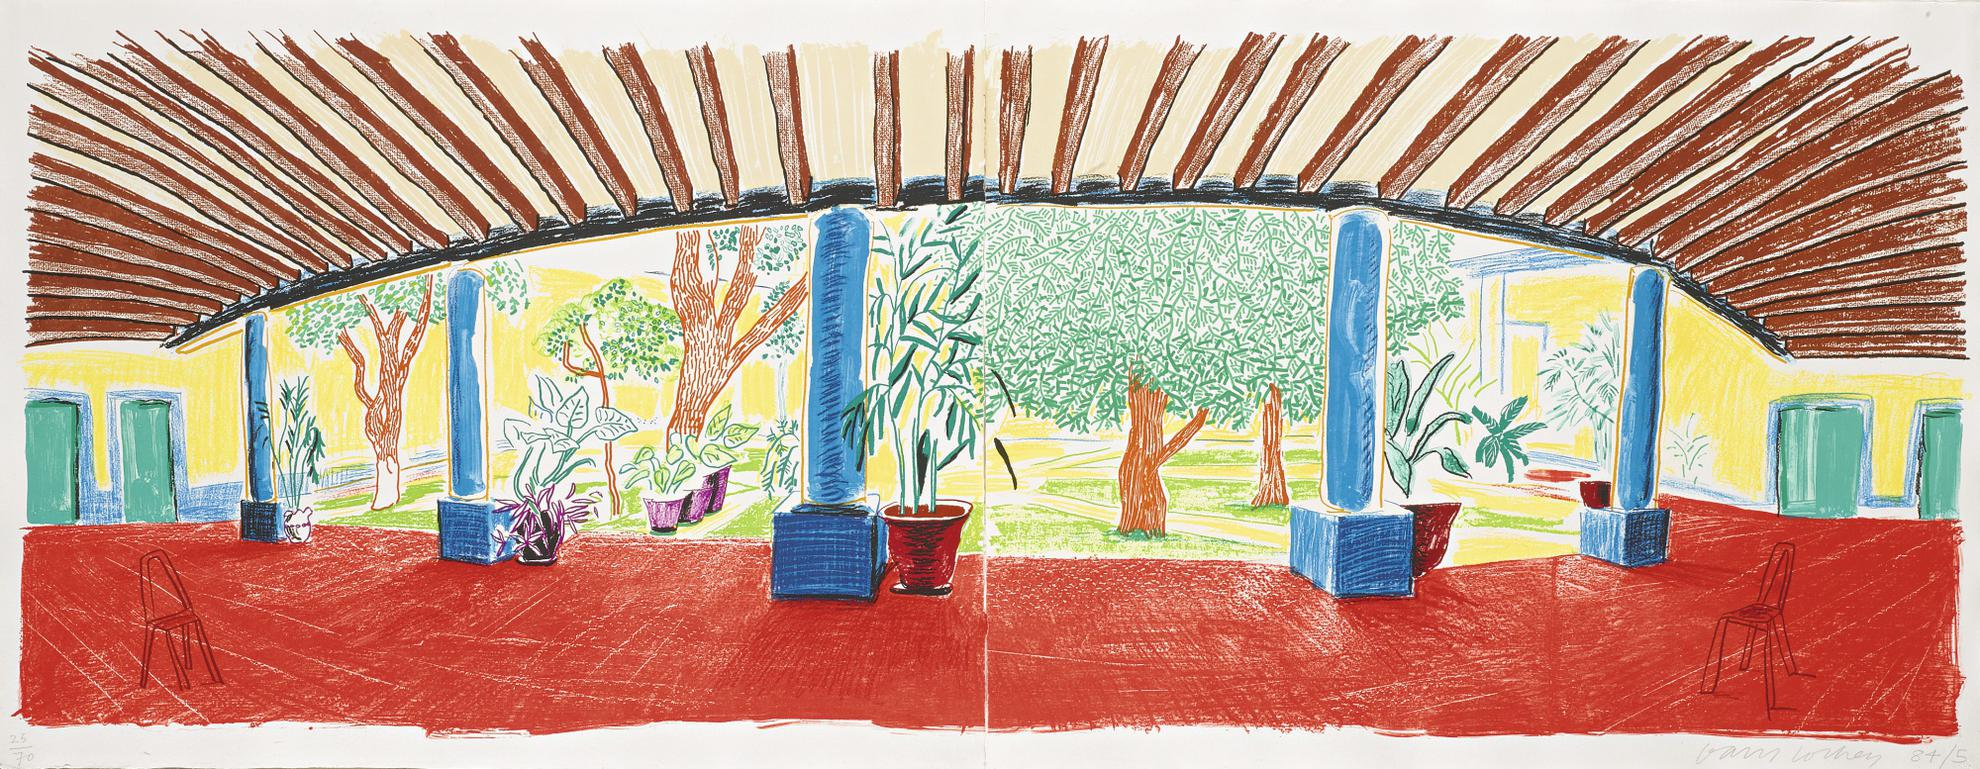 David Hockney-Hotel Acatlan: First Day (Museum Of Contemporary Art, Tokyo 269)-1985